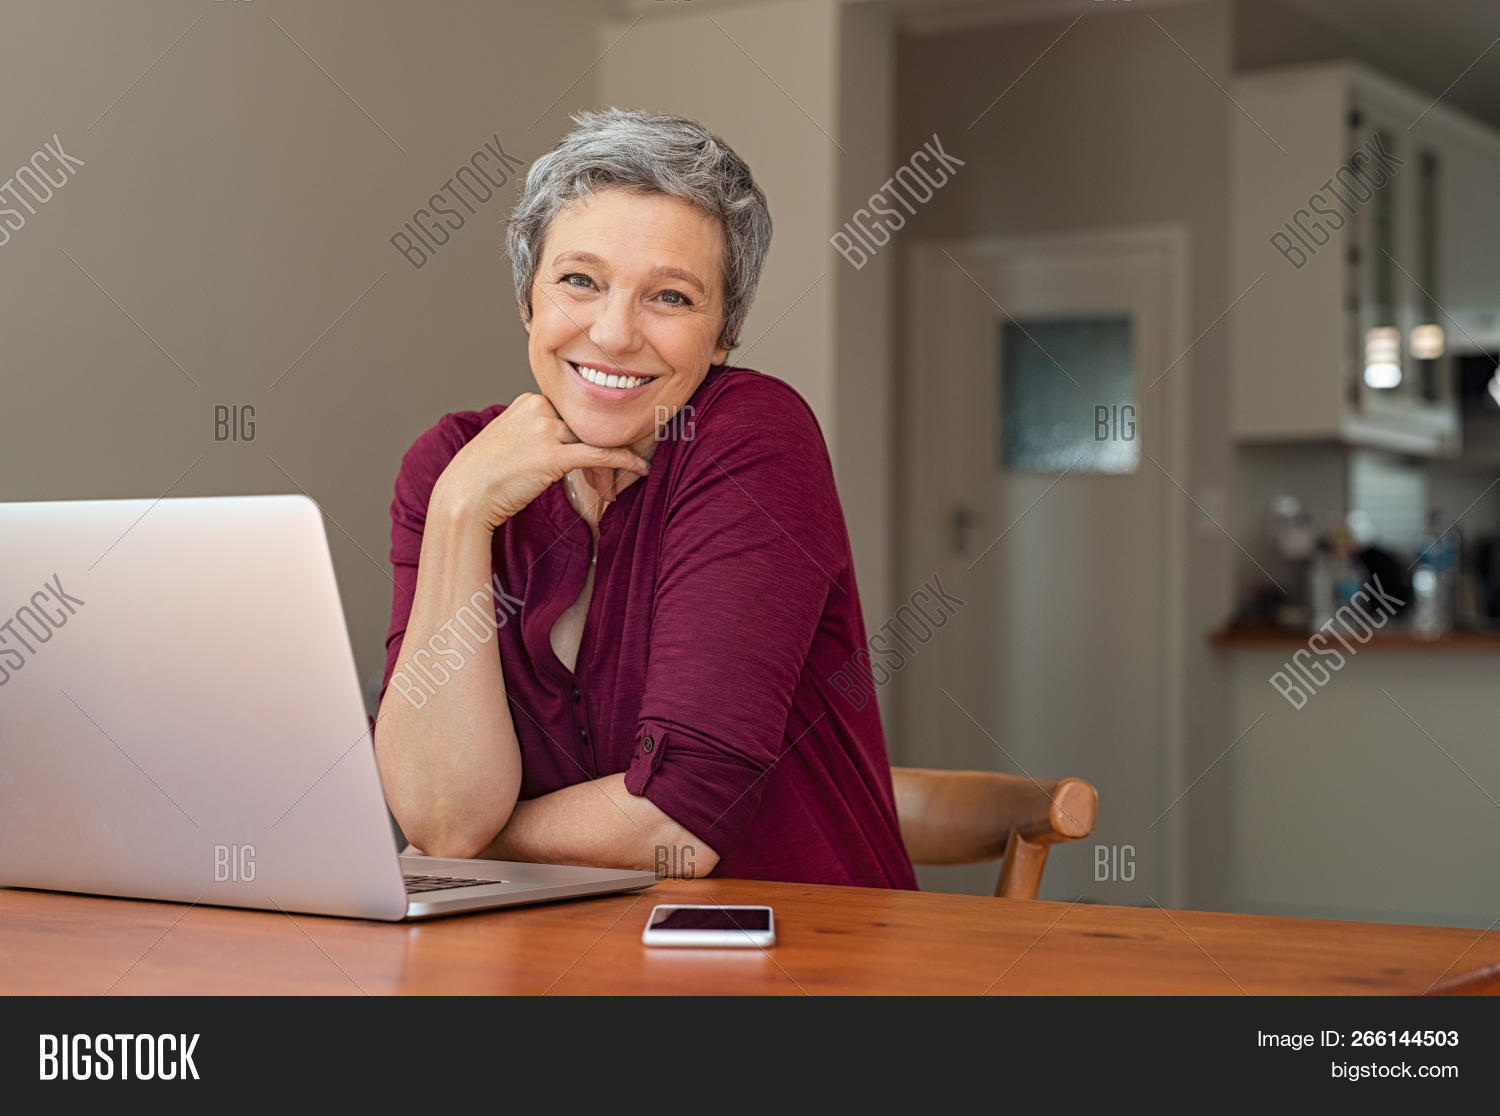 beautiful,beautiful woman,business,businesswoman,casual woman,caucasian,cheerful,communication,computer,connection,copy space,digital,elder,elderly,elderly woman,gray hair,happy,home,indoor,internet,laptop,leisure,living room,looking,looking at camera,mature,matured,old,online,pc,people,portrait,positive,relax,retired,retired woman,retirement,senior,sitting,smile,technology,toothy smile,wifi,wireless,work,working at home